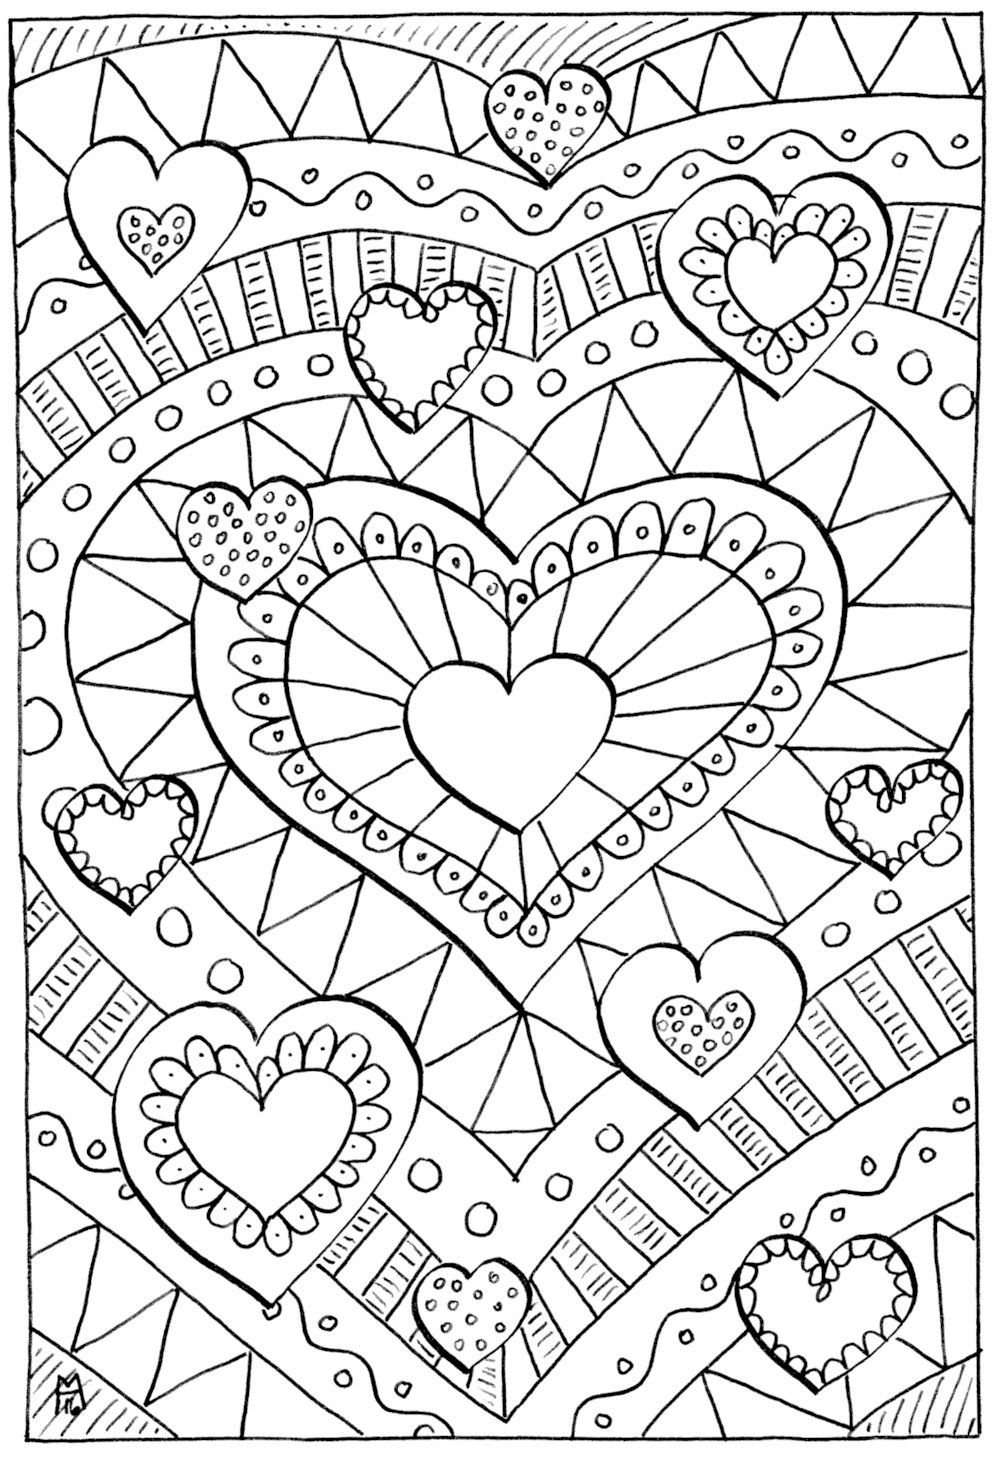 Latest Healing Hearts Coloring Page Favecrafts Com Free Download Original 1024 x 768